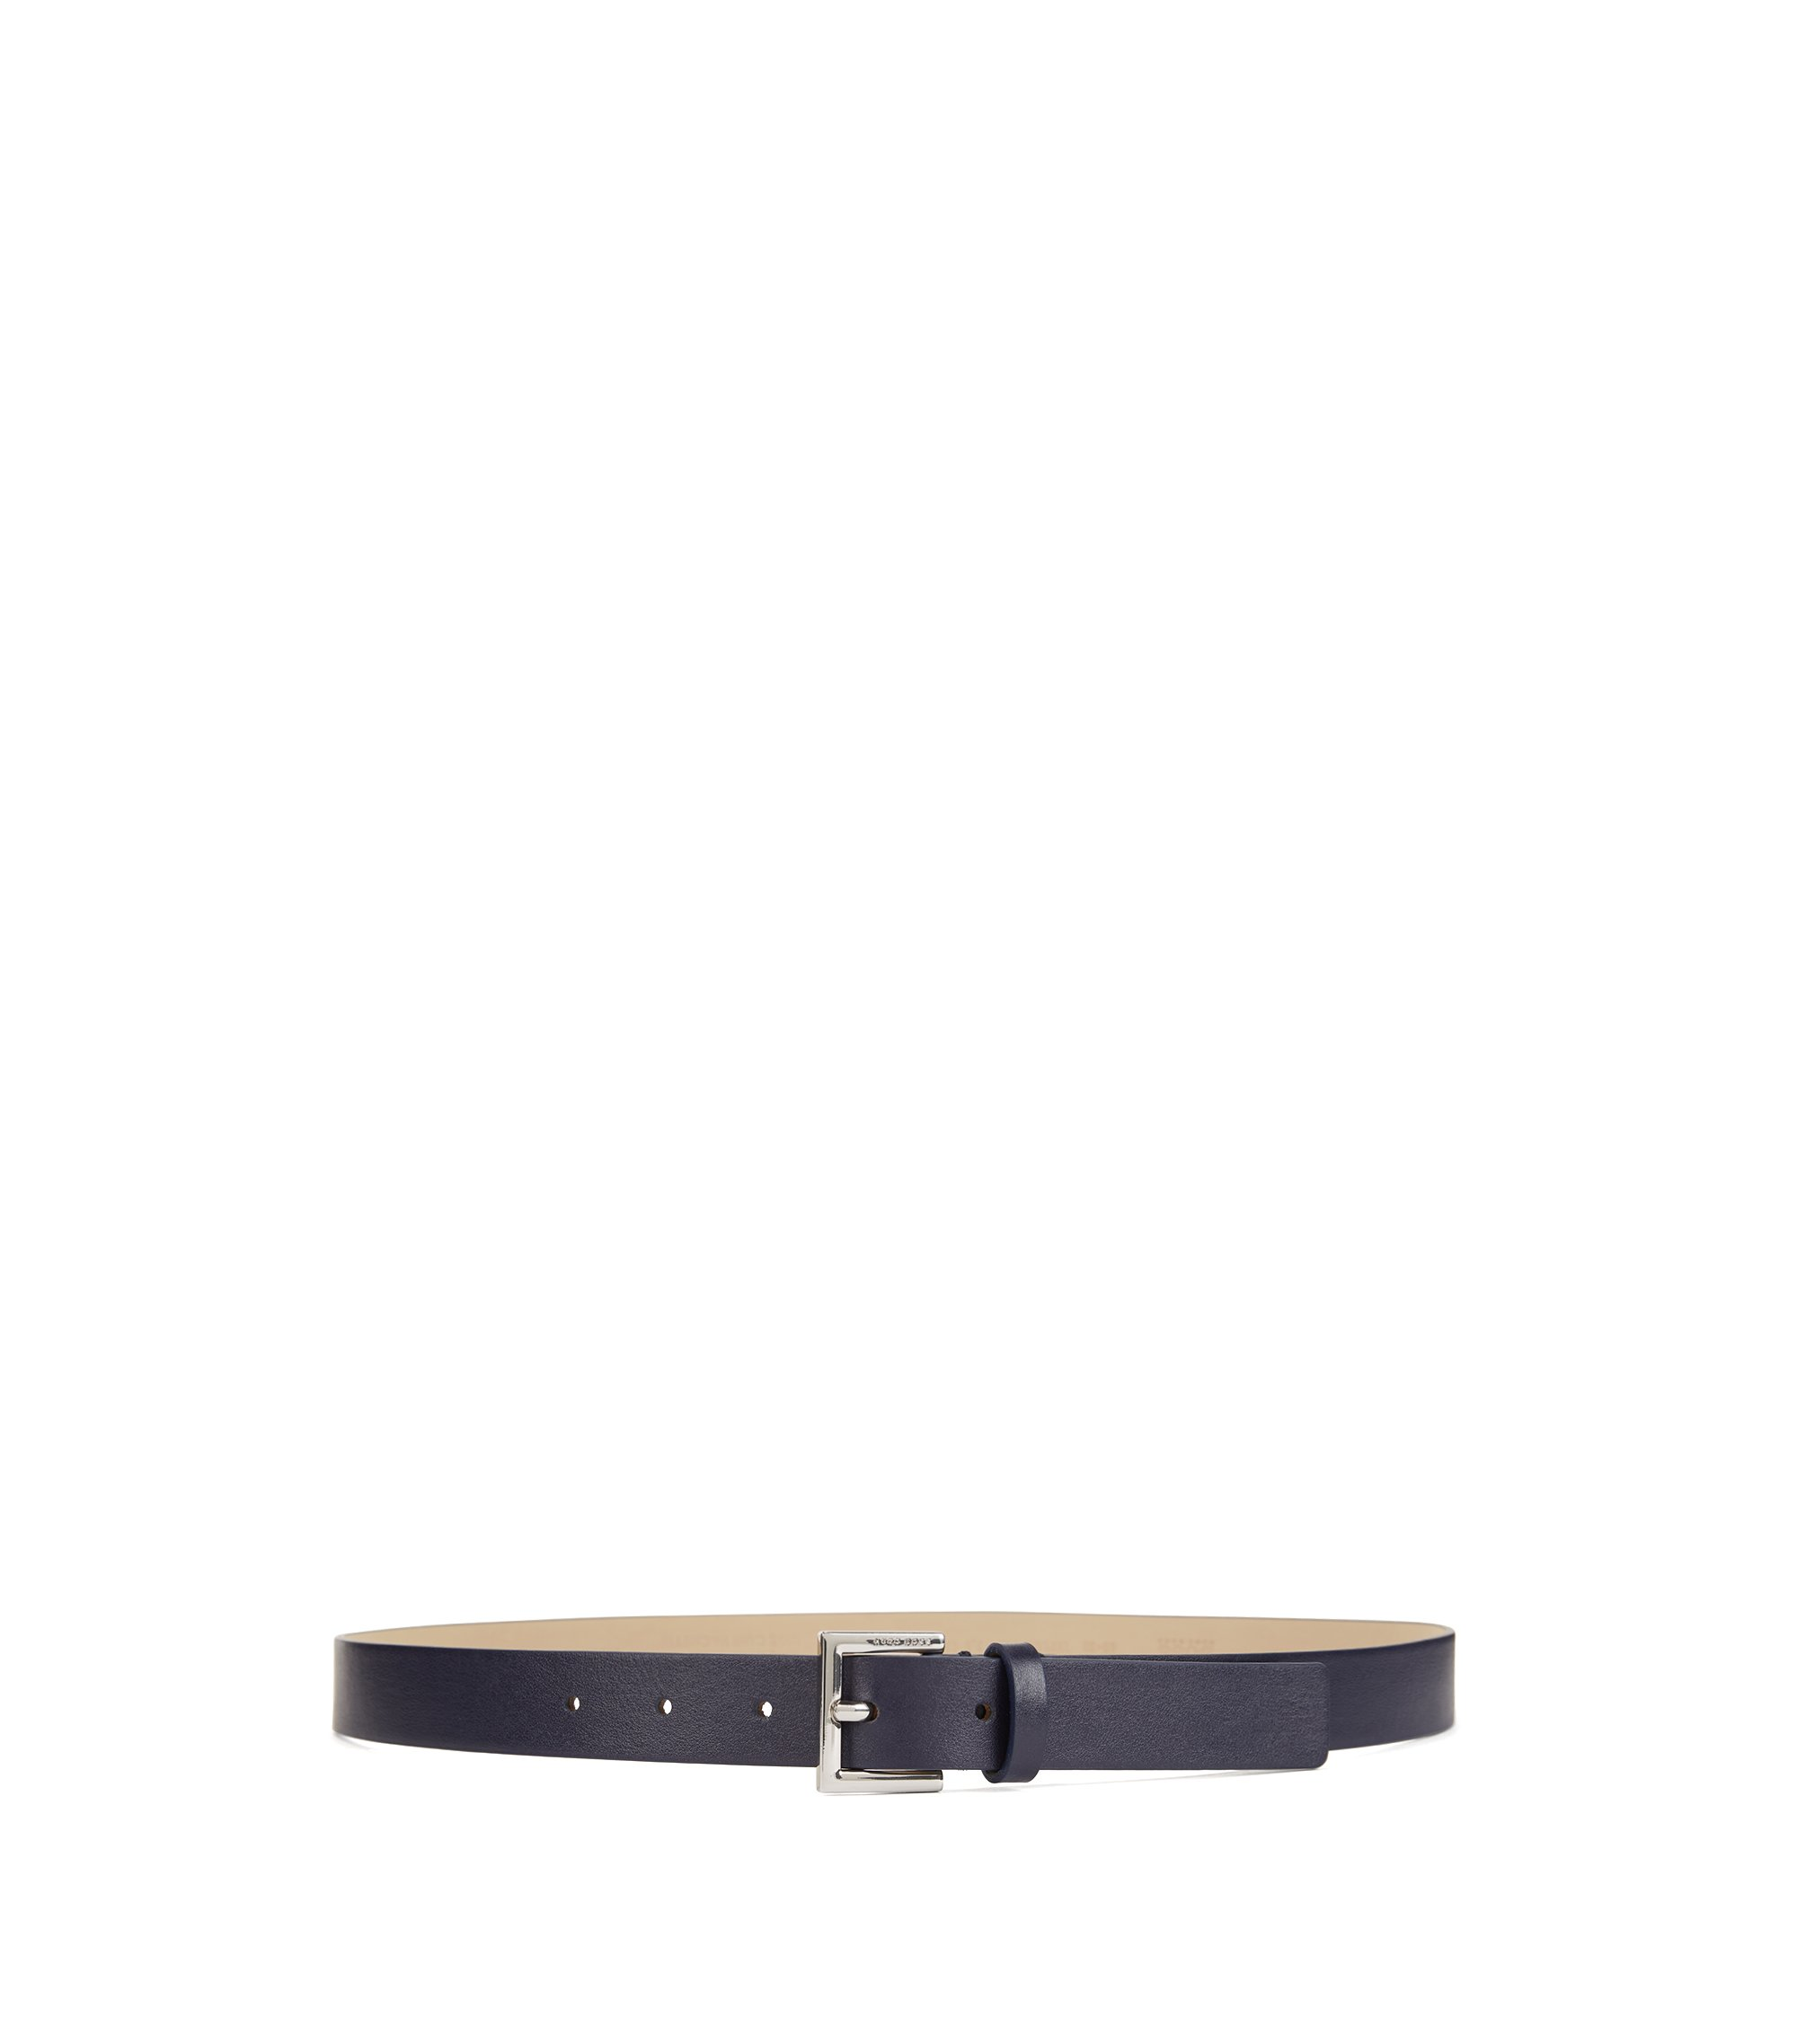 Italian-leather belt with logo-engraved buckle, Blu